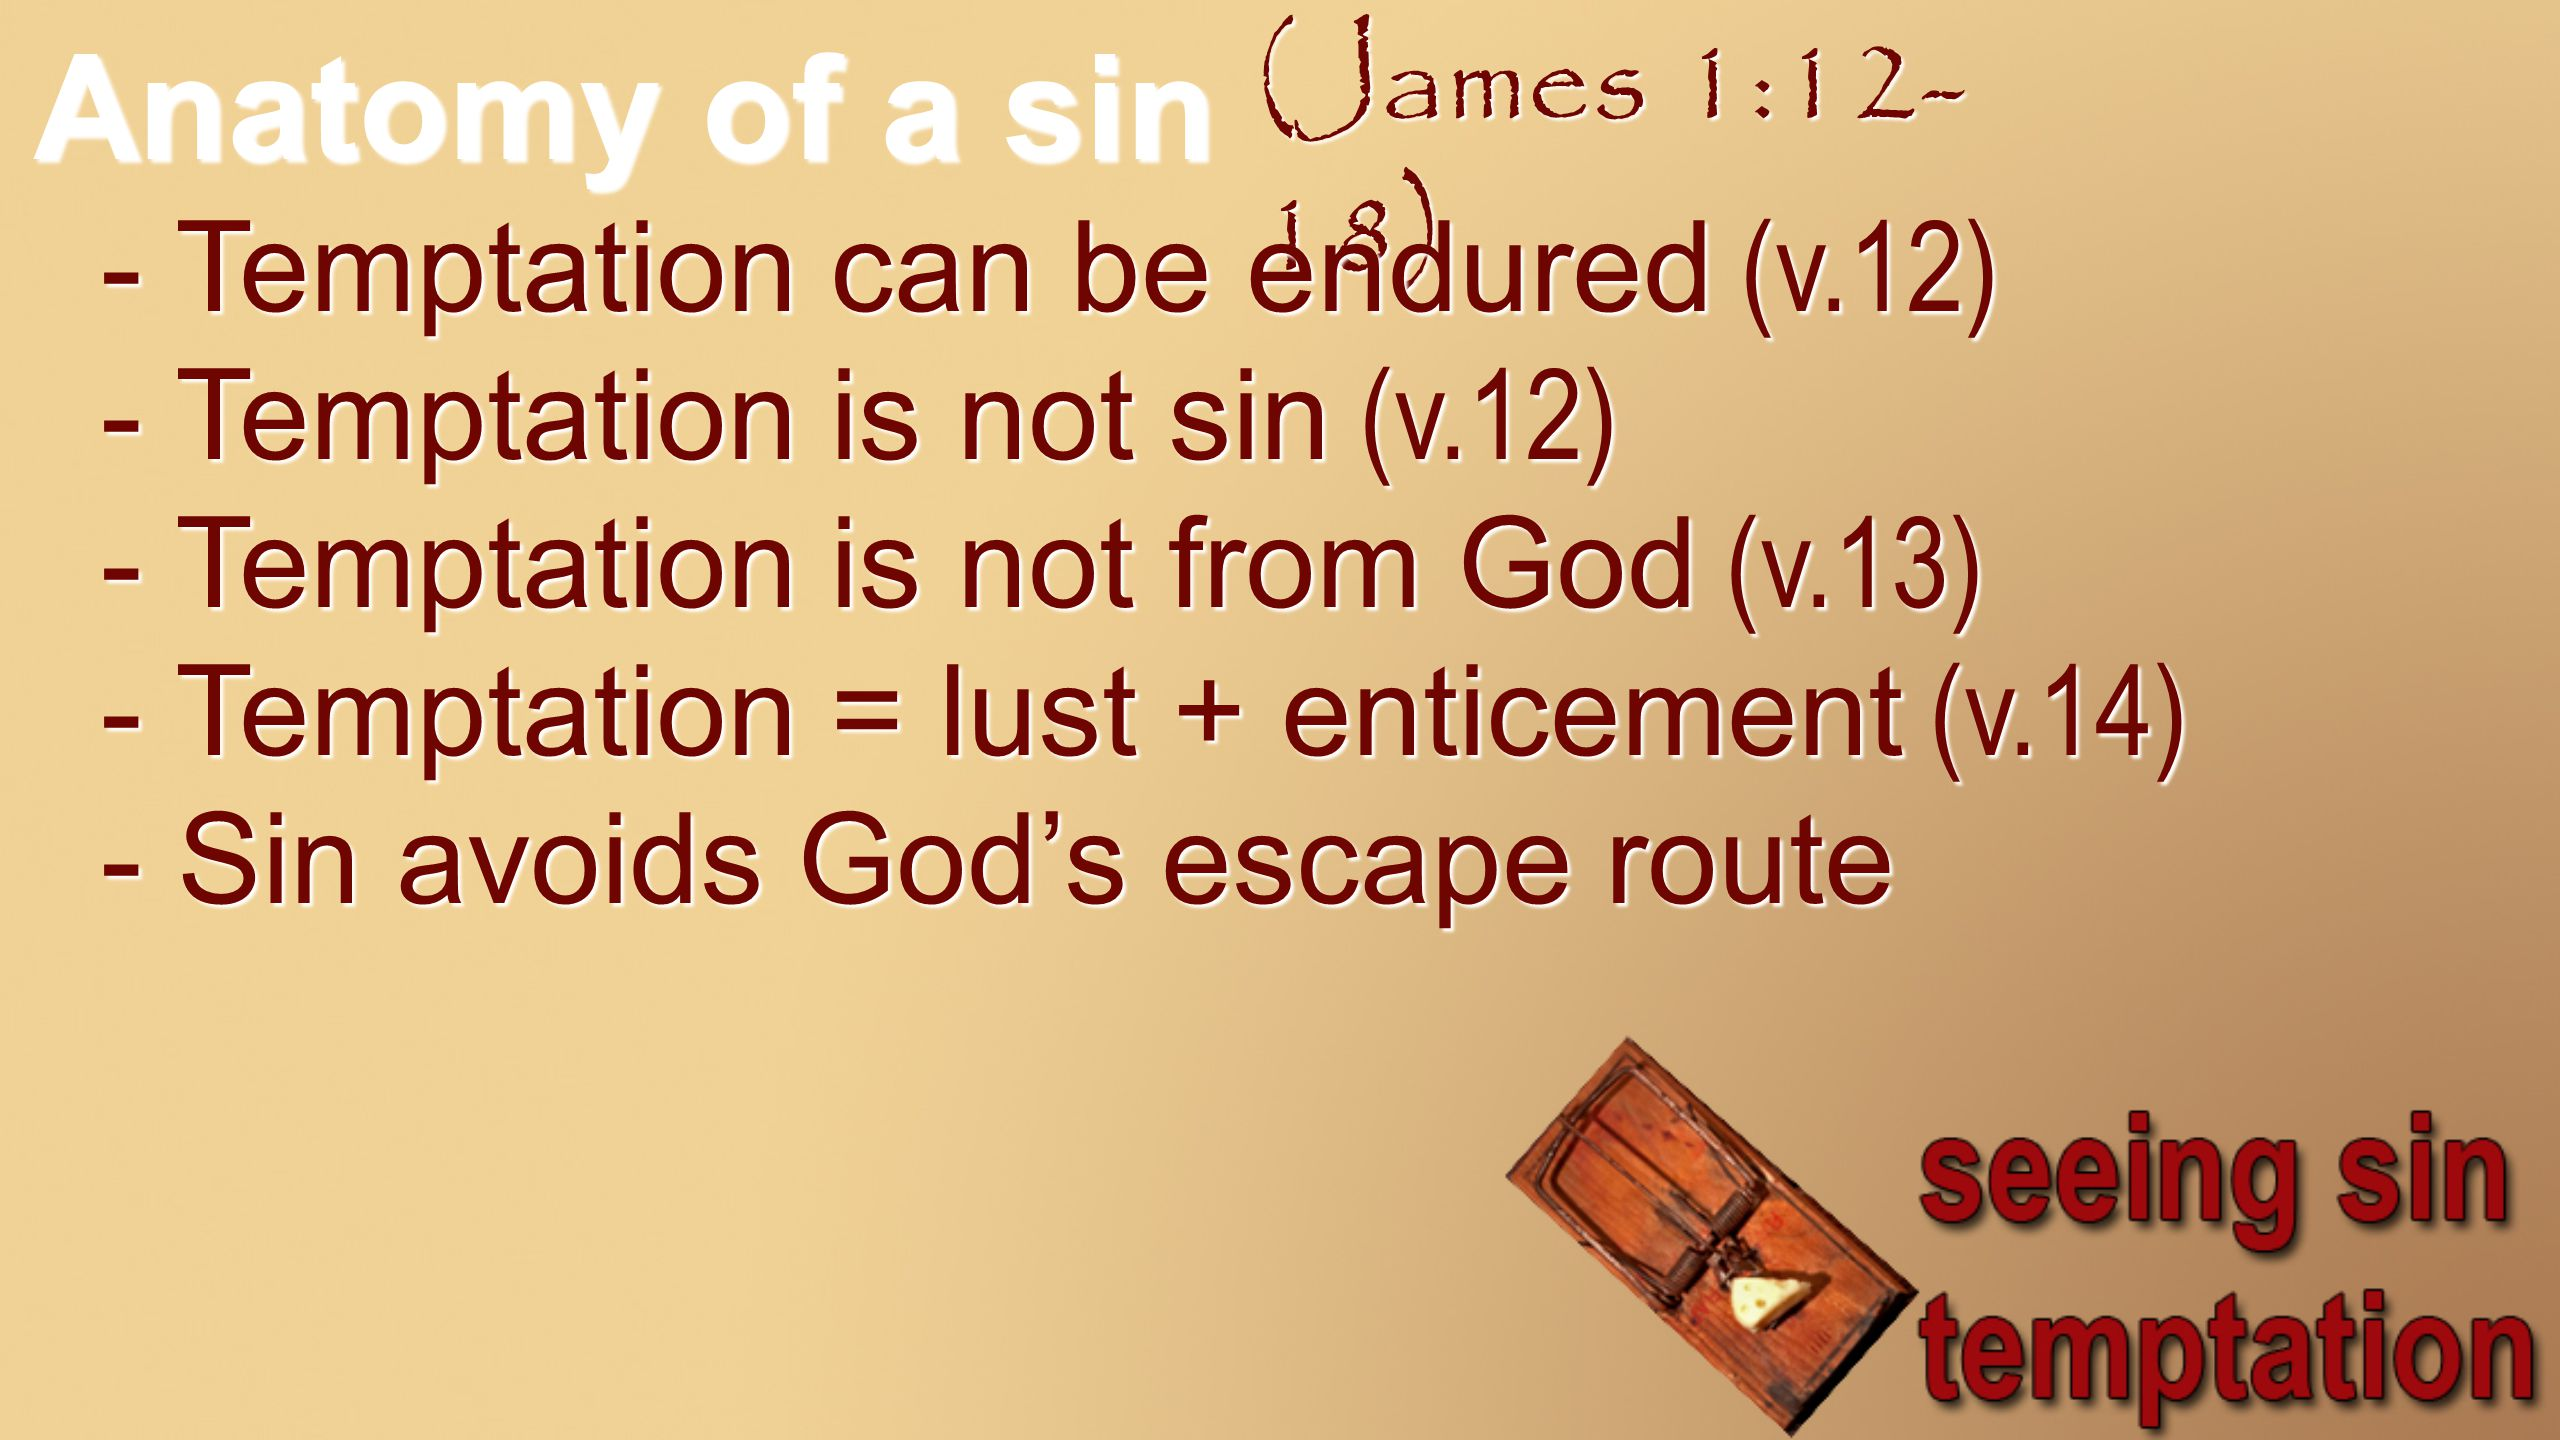 Anatomy of a sin (James 1:12- 18) - Temptation can be endured (v.12) - Temptation is not sin (v.12) - Temptation is not from God (v.13) - Temptation = lust + enticement (v.14) - Sin avoids God's escape route